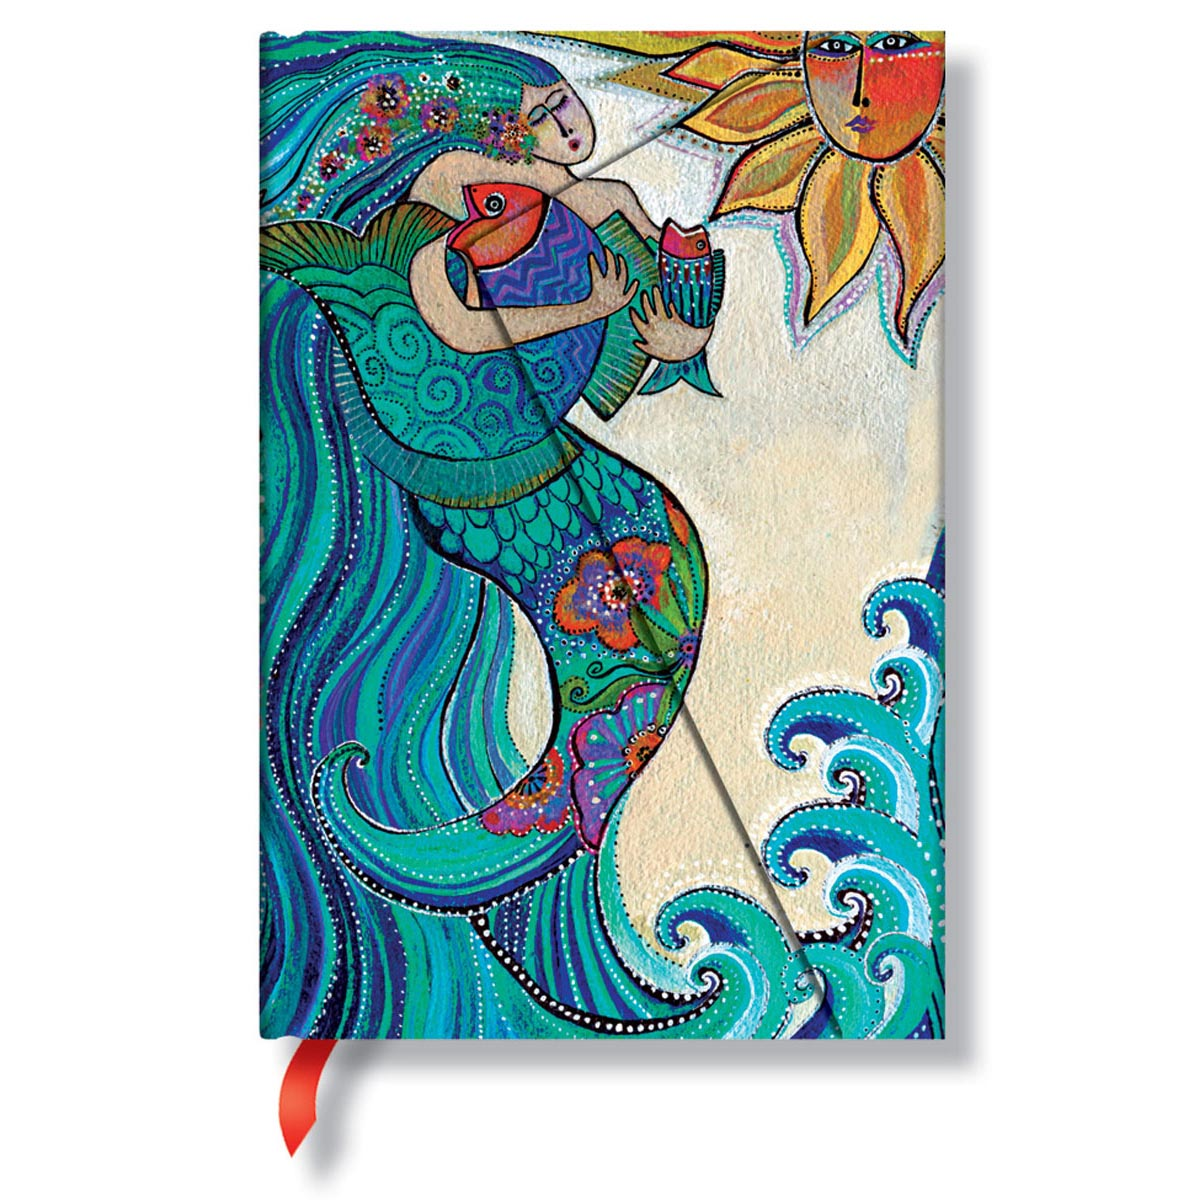 Paperblanks Laurel Burch Ocean Song Mini 4 x 5.5 Inch Journal